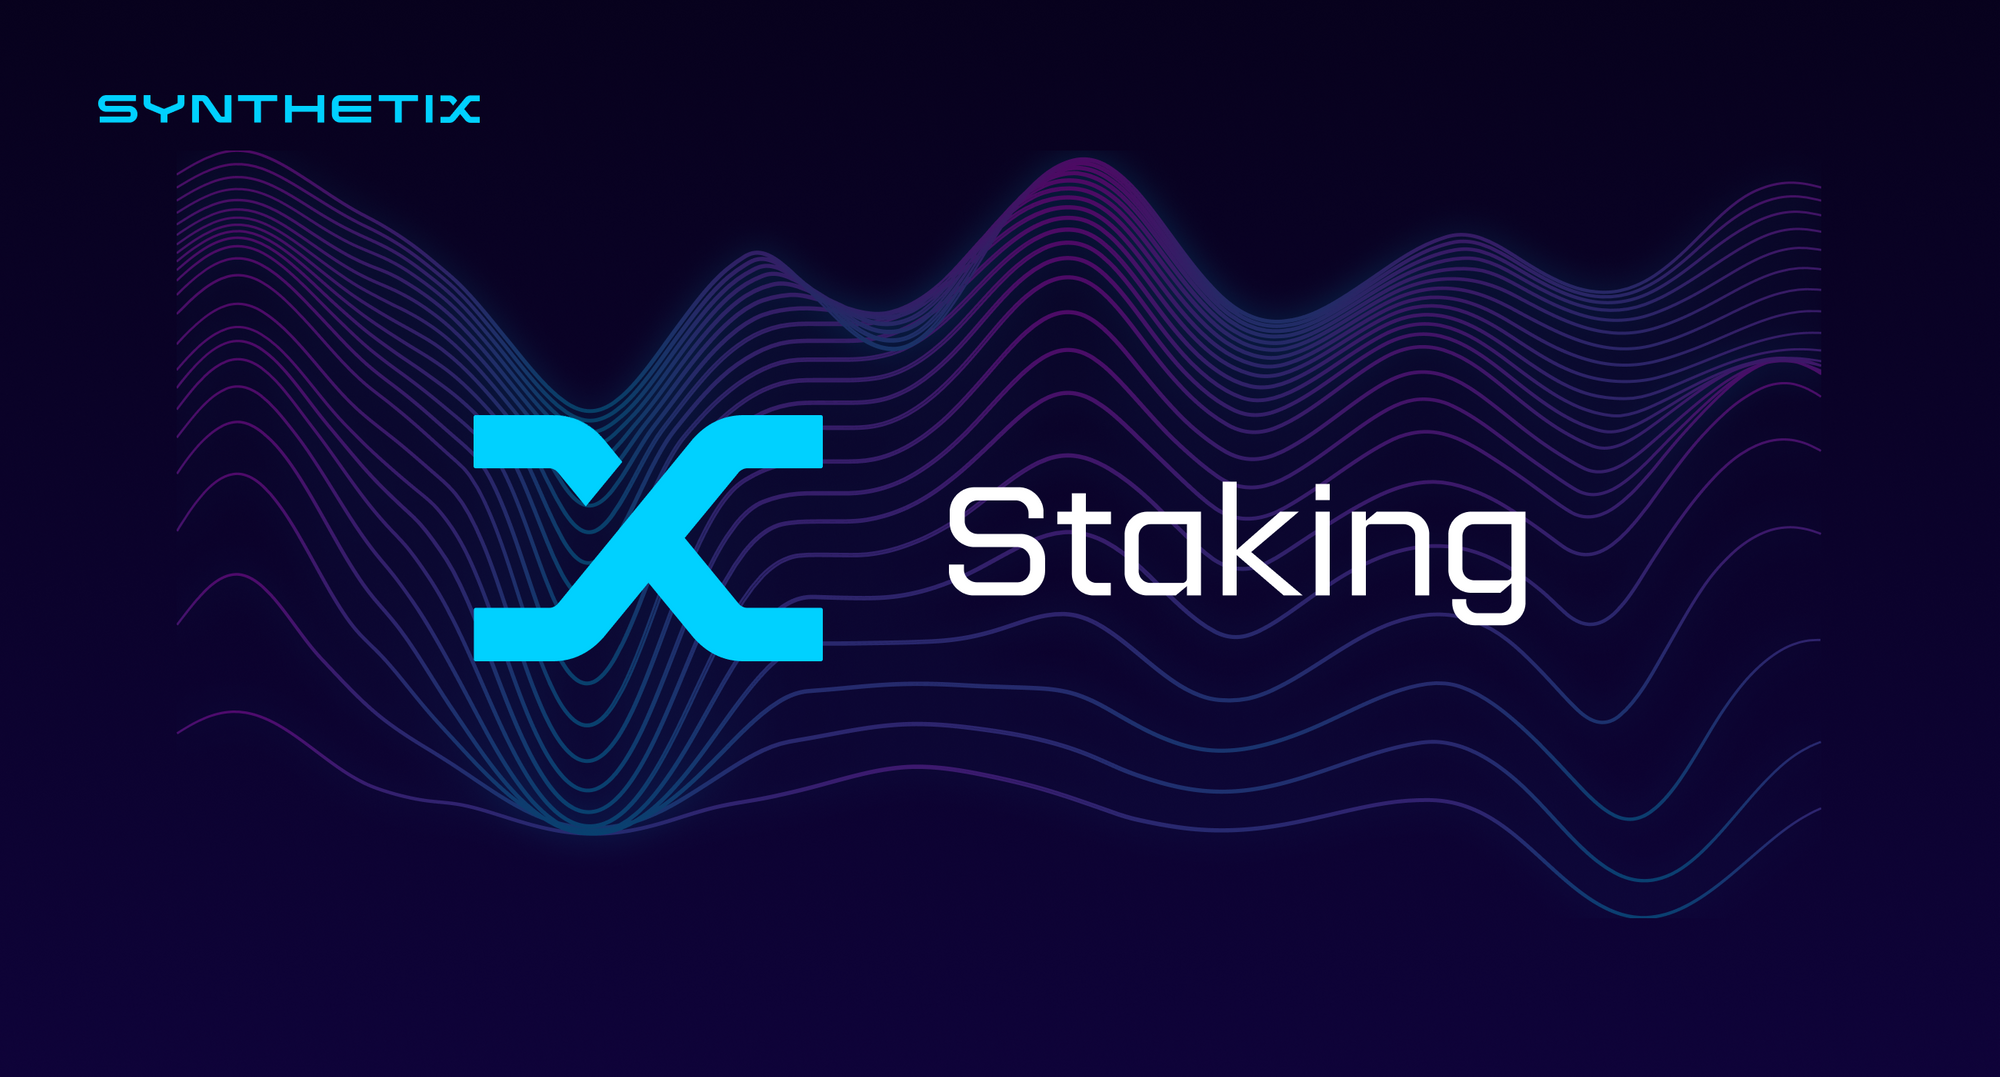 Meet the new Synthetix Staking dApp!